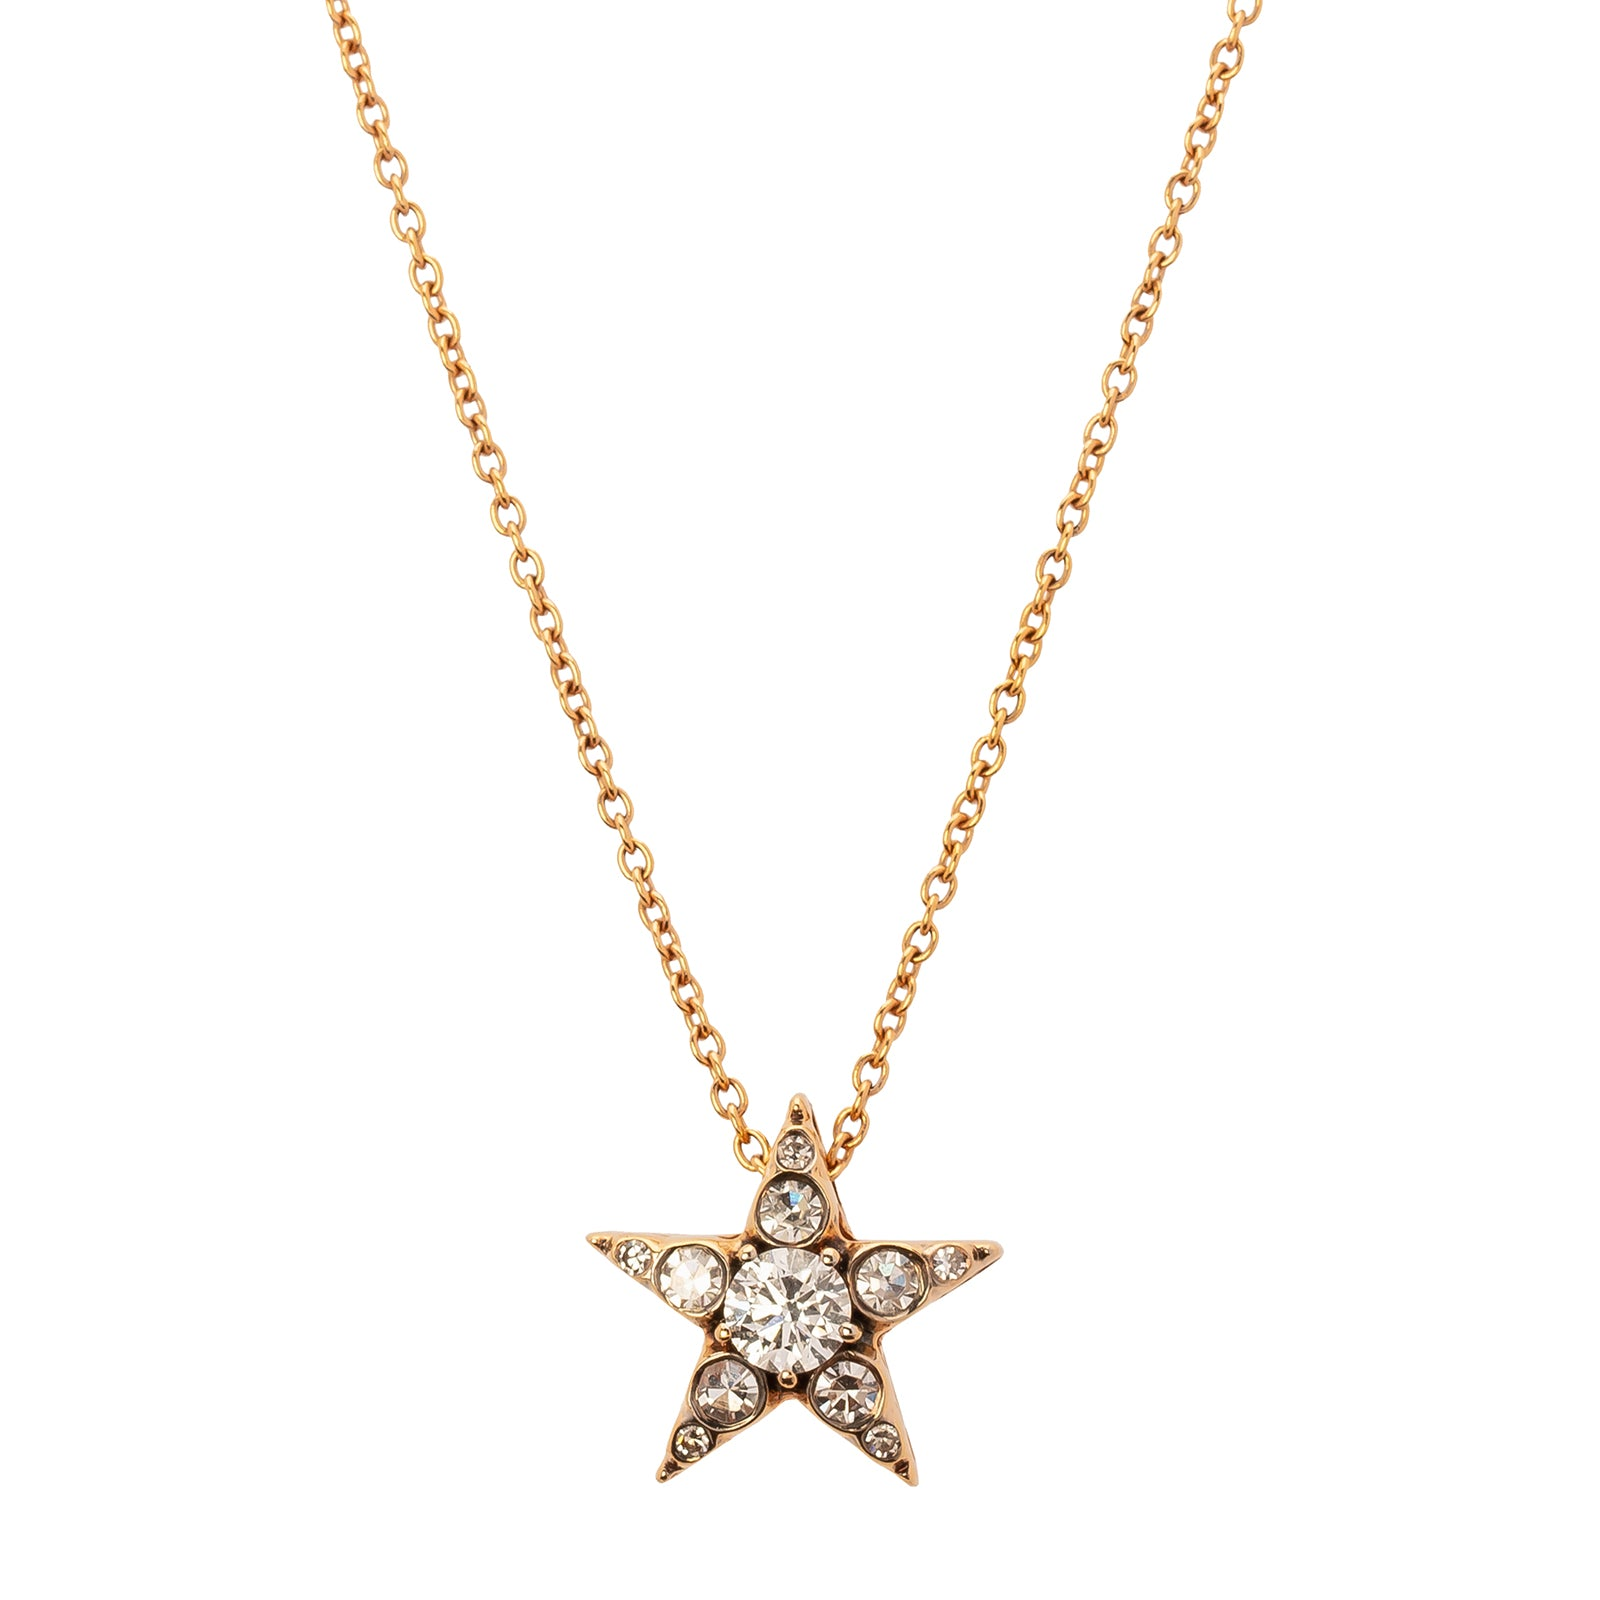 Selim Mouzannar Istanbul Star Necklace - White Diamond - Necklaces - Broken English Jewelry